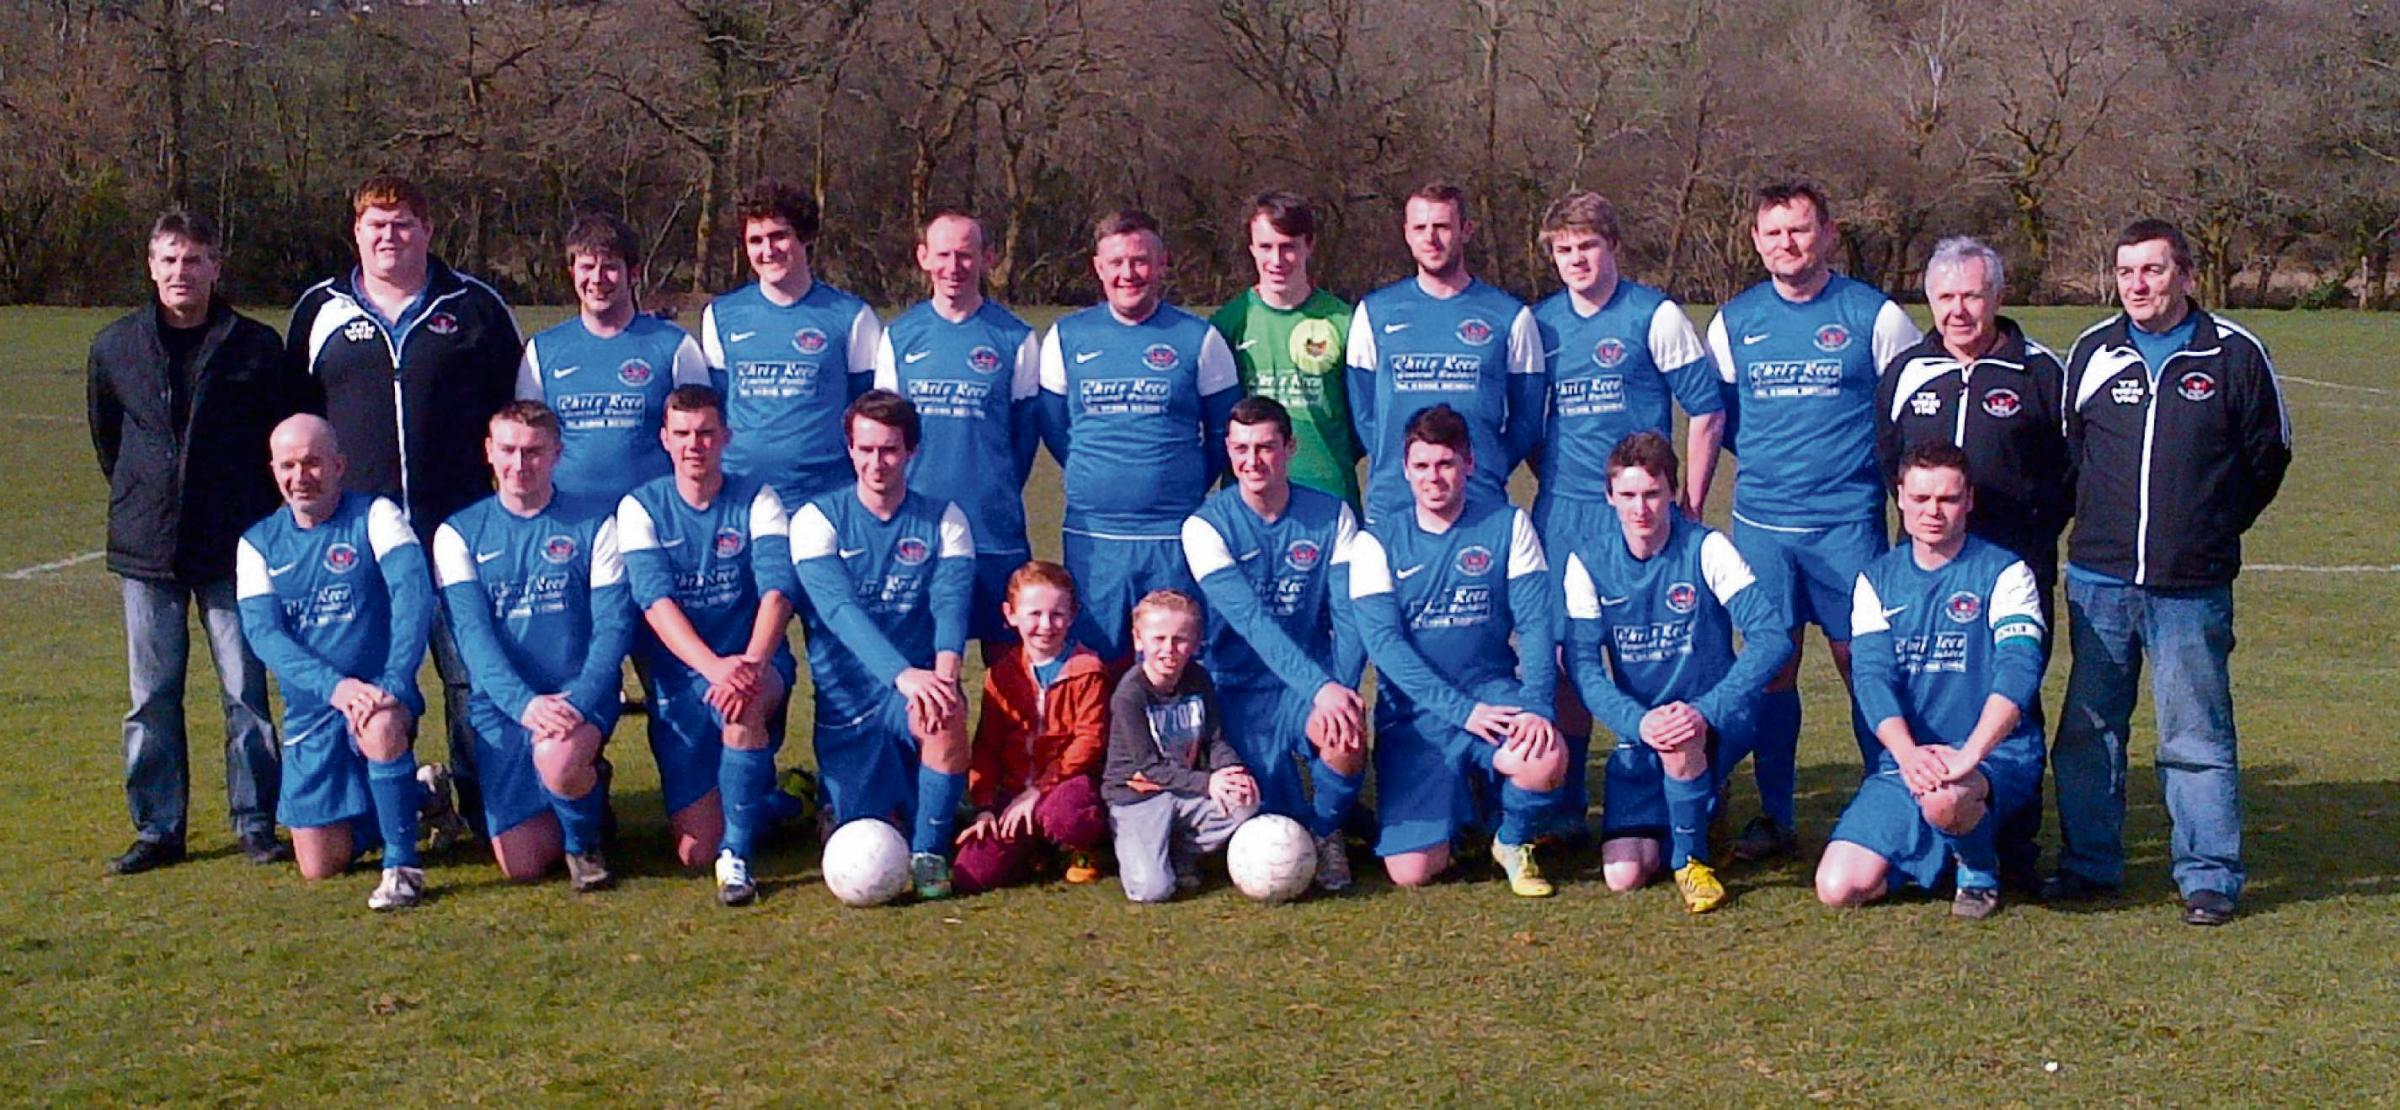 HOTSHOTS: Llandeilo Reserves are set to take part in their first final after seeing off Welfield on penalties.